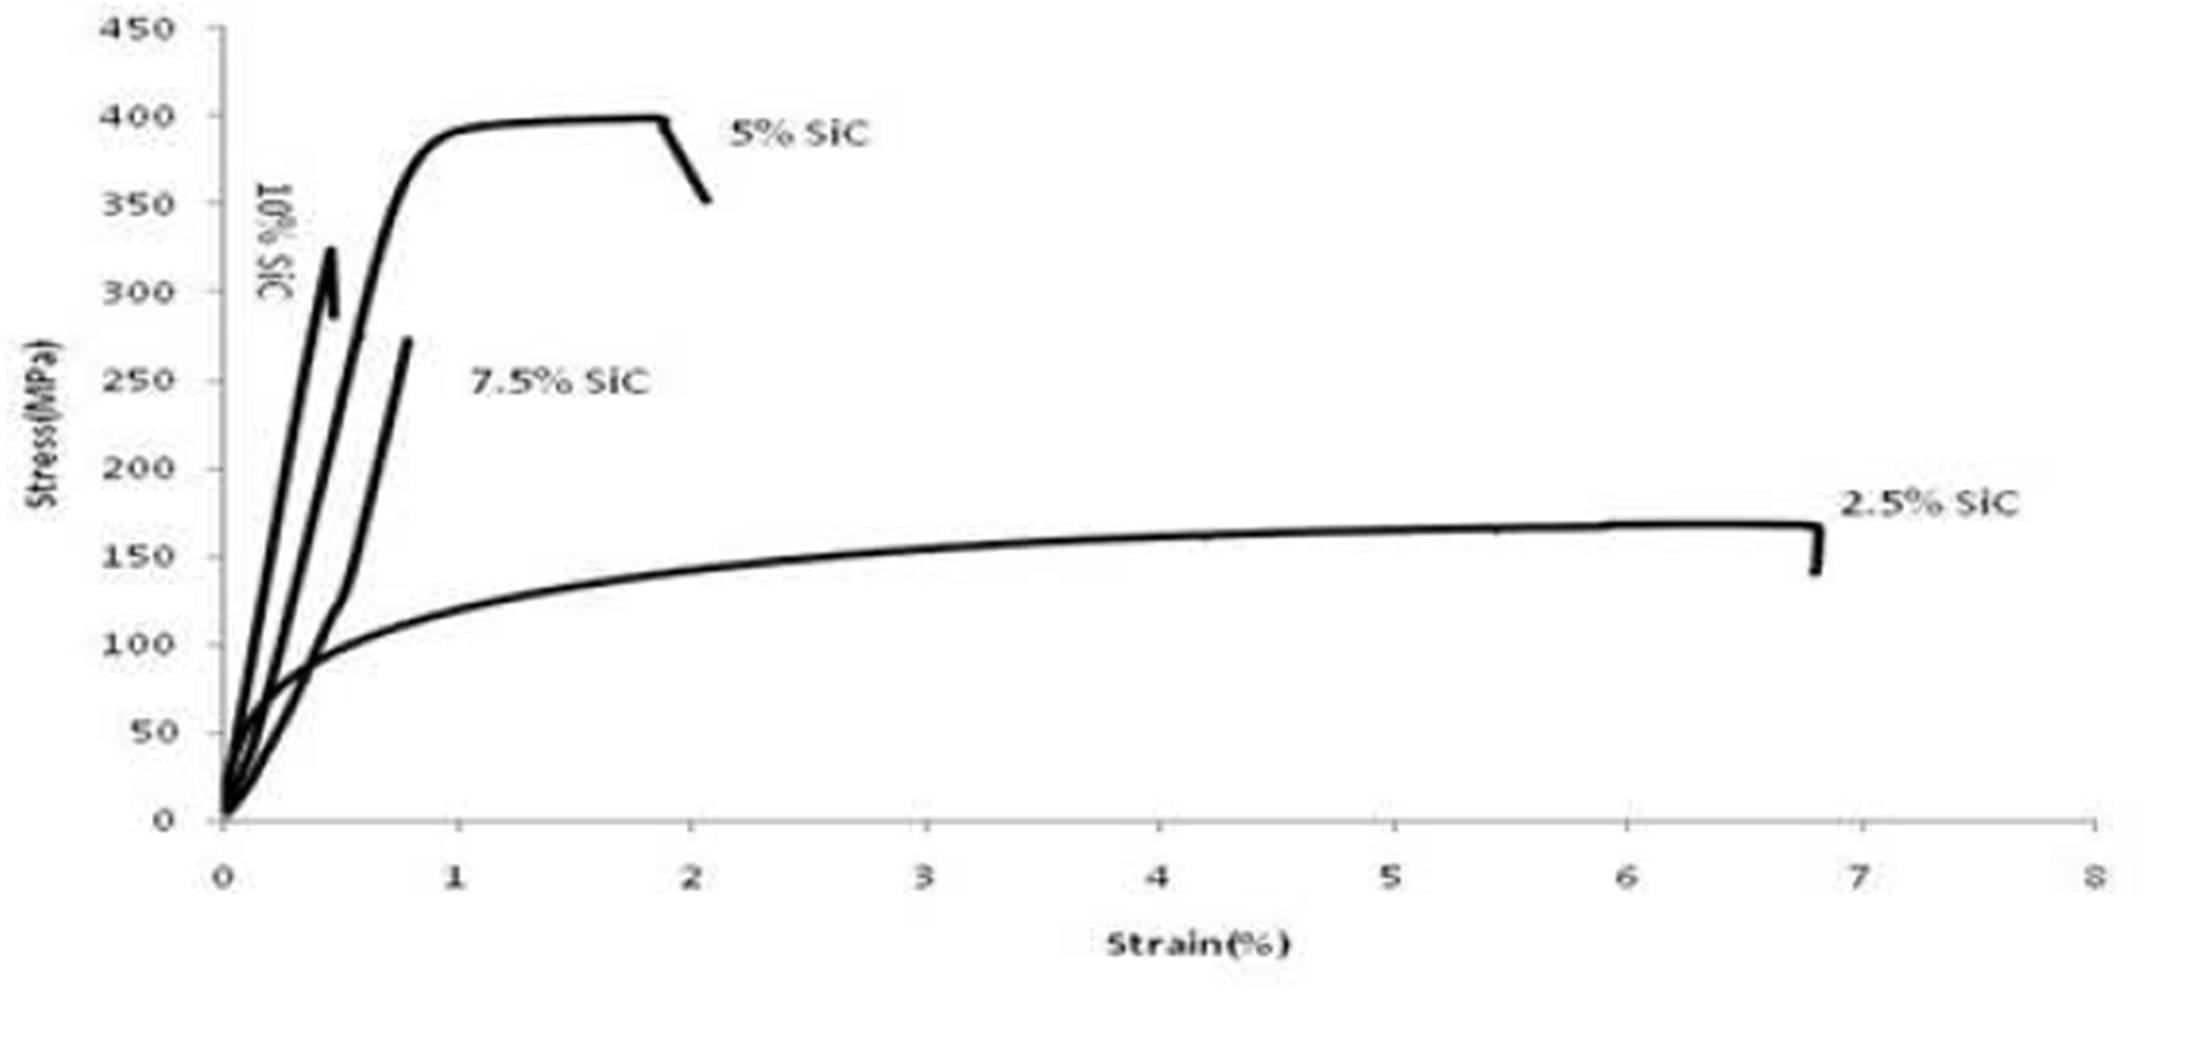 Ibima Publishing Microstructure And Mechanical Properties Of Tensile Stress Strain Diagram Figure 10 Curves Specimens Cut From Al 4wtcu 25 Vol Sic Bars Produced By Pce